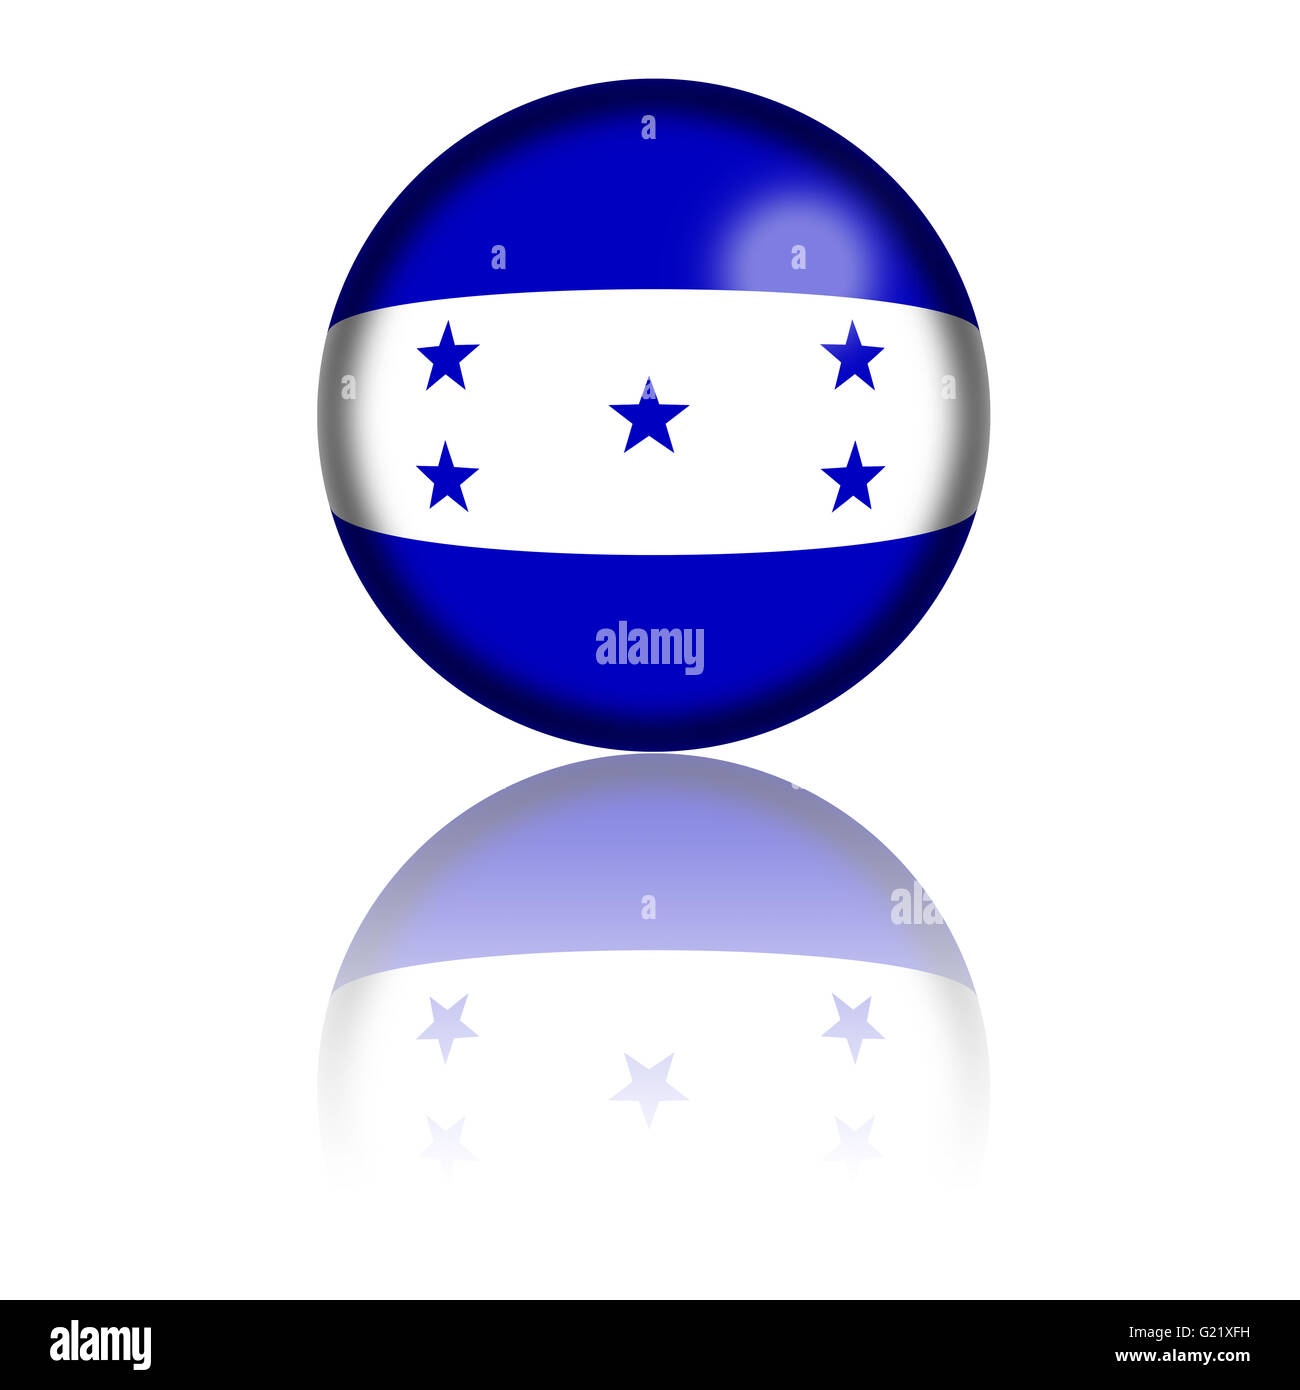 3D sphere or badge of Honduras flag with reflection at bottom. Stock Photo